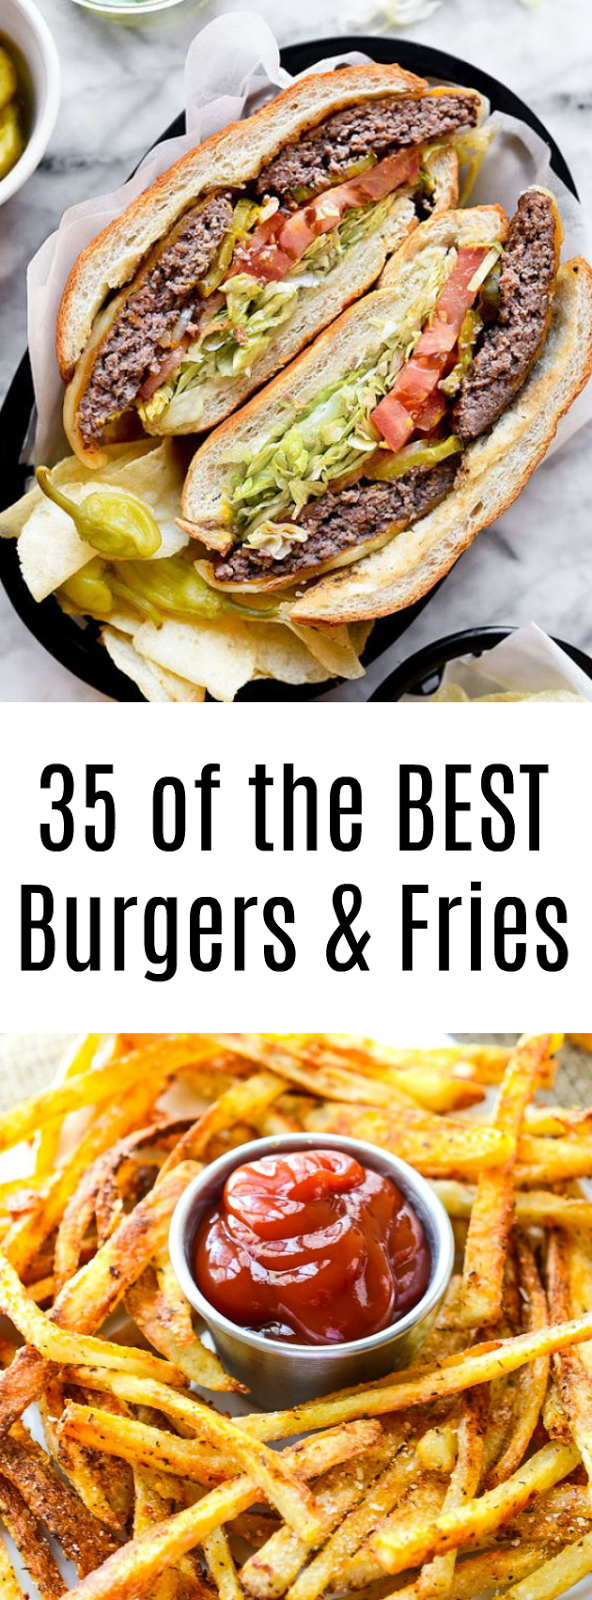 35 Best Burgers & Fries